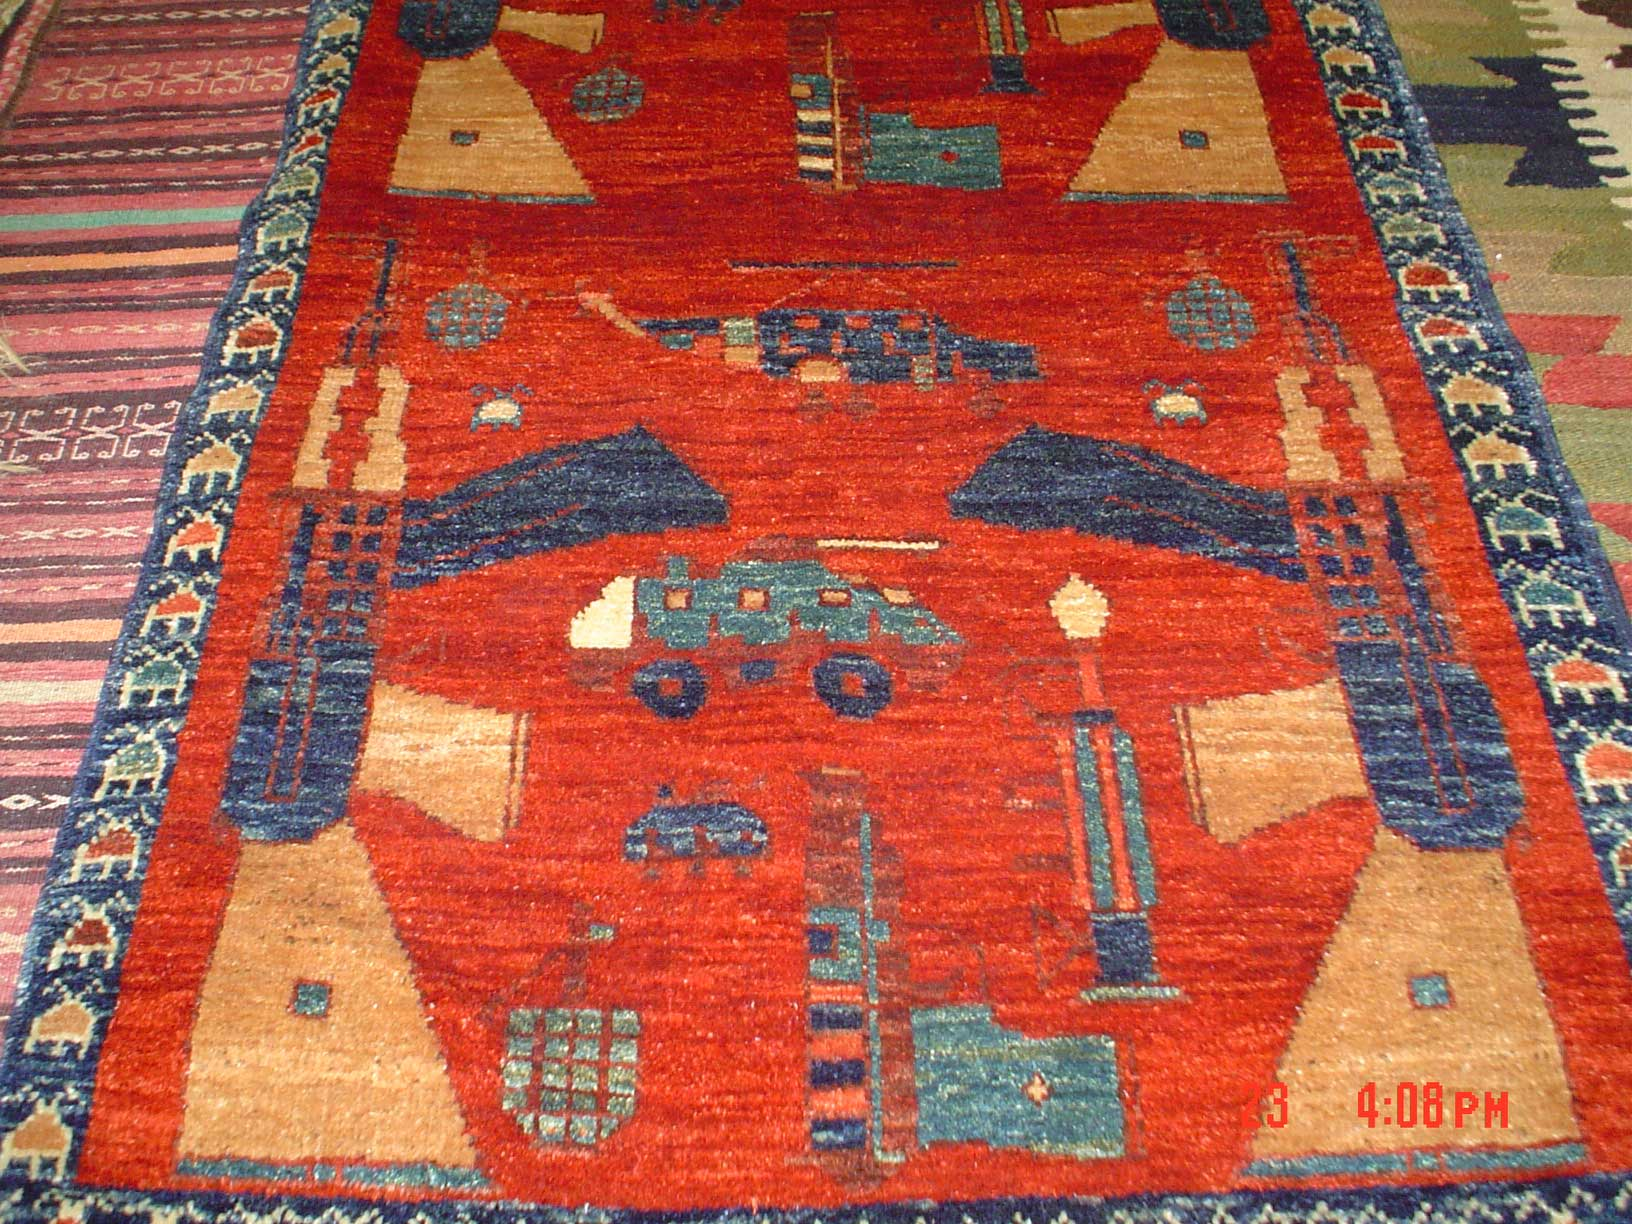 Afghan WAR RUG, veg dyes, hand-spun wool. AK 47's & tanks! Sold.